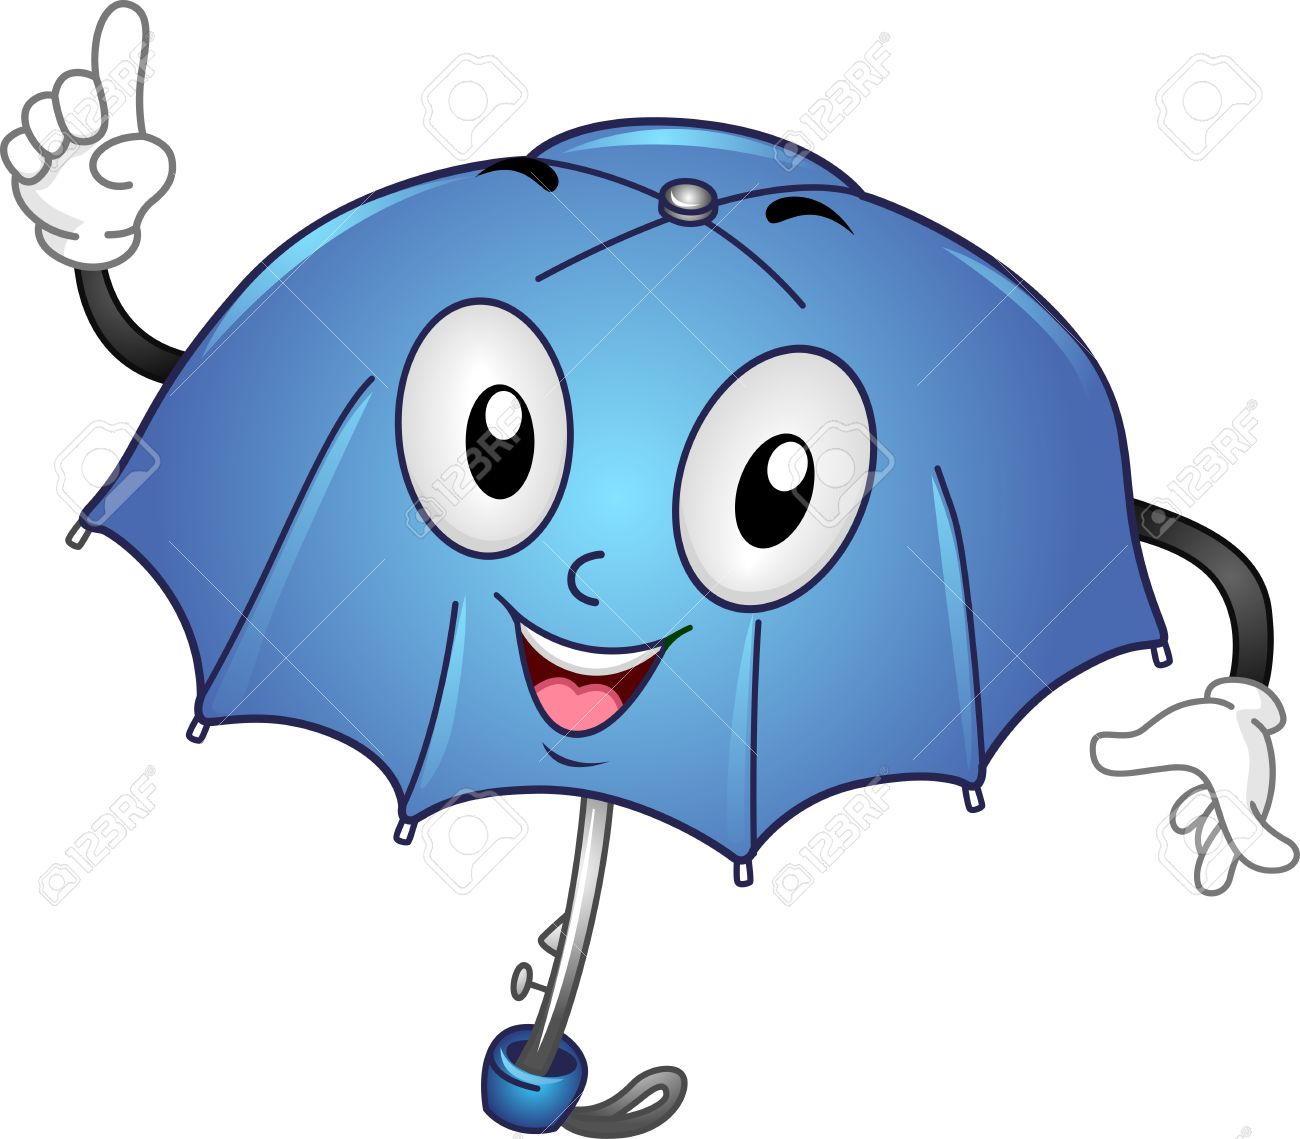 Cartoon Umbrella Clipart.